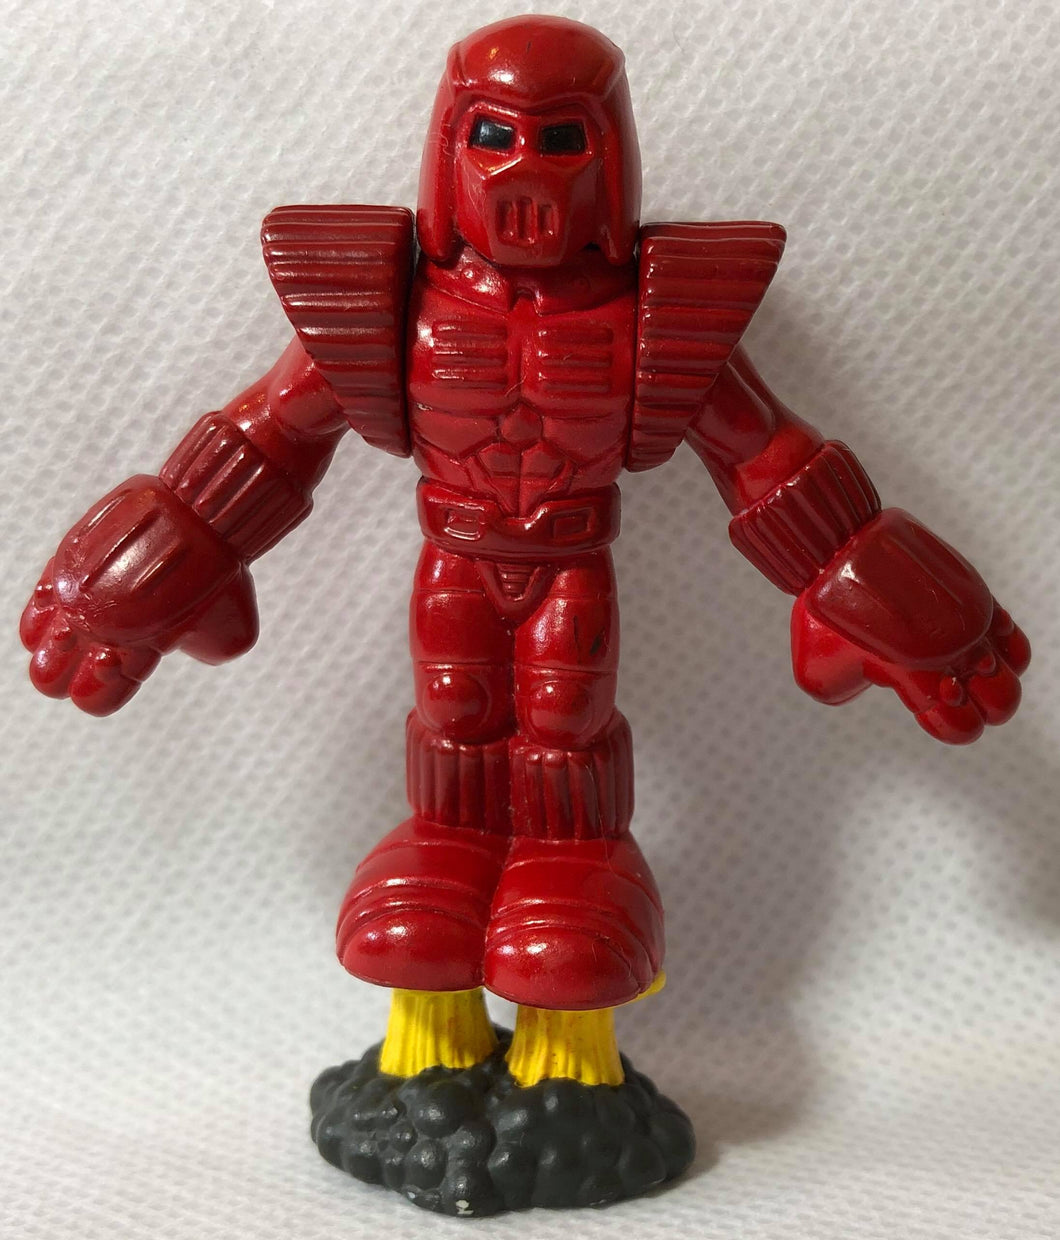 Marvel Superhero Squad Crimson Dynamo - Demize Collectibles LTD